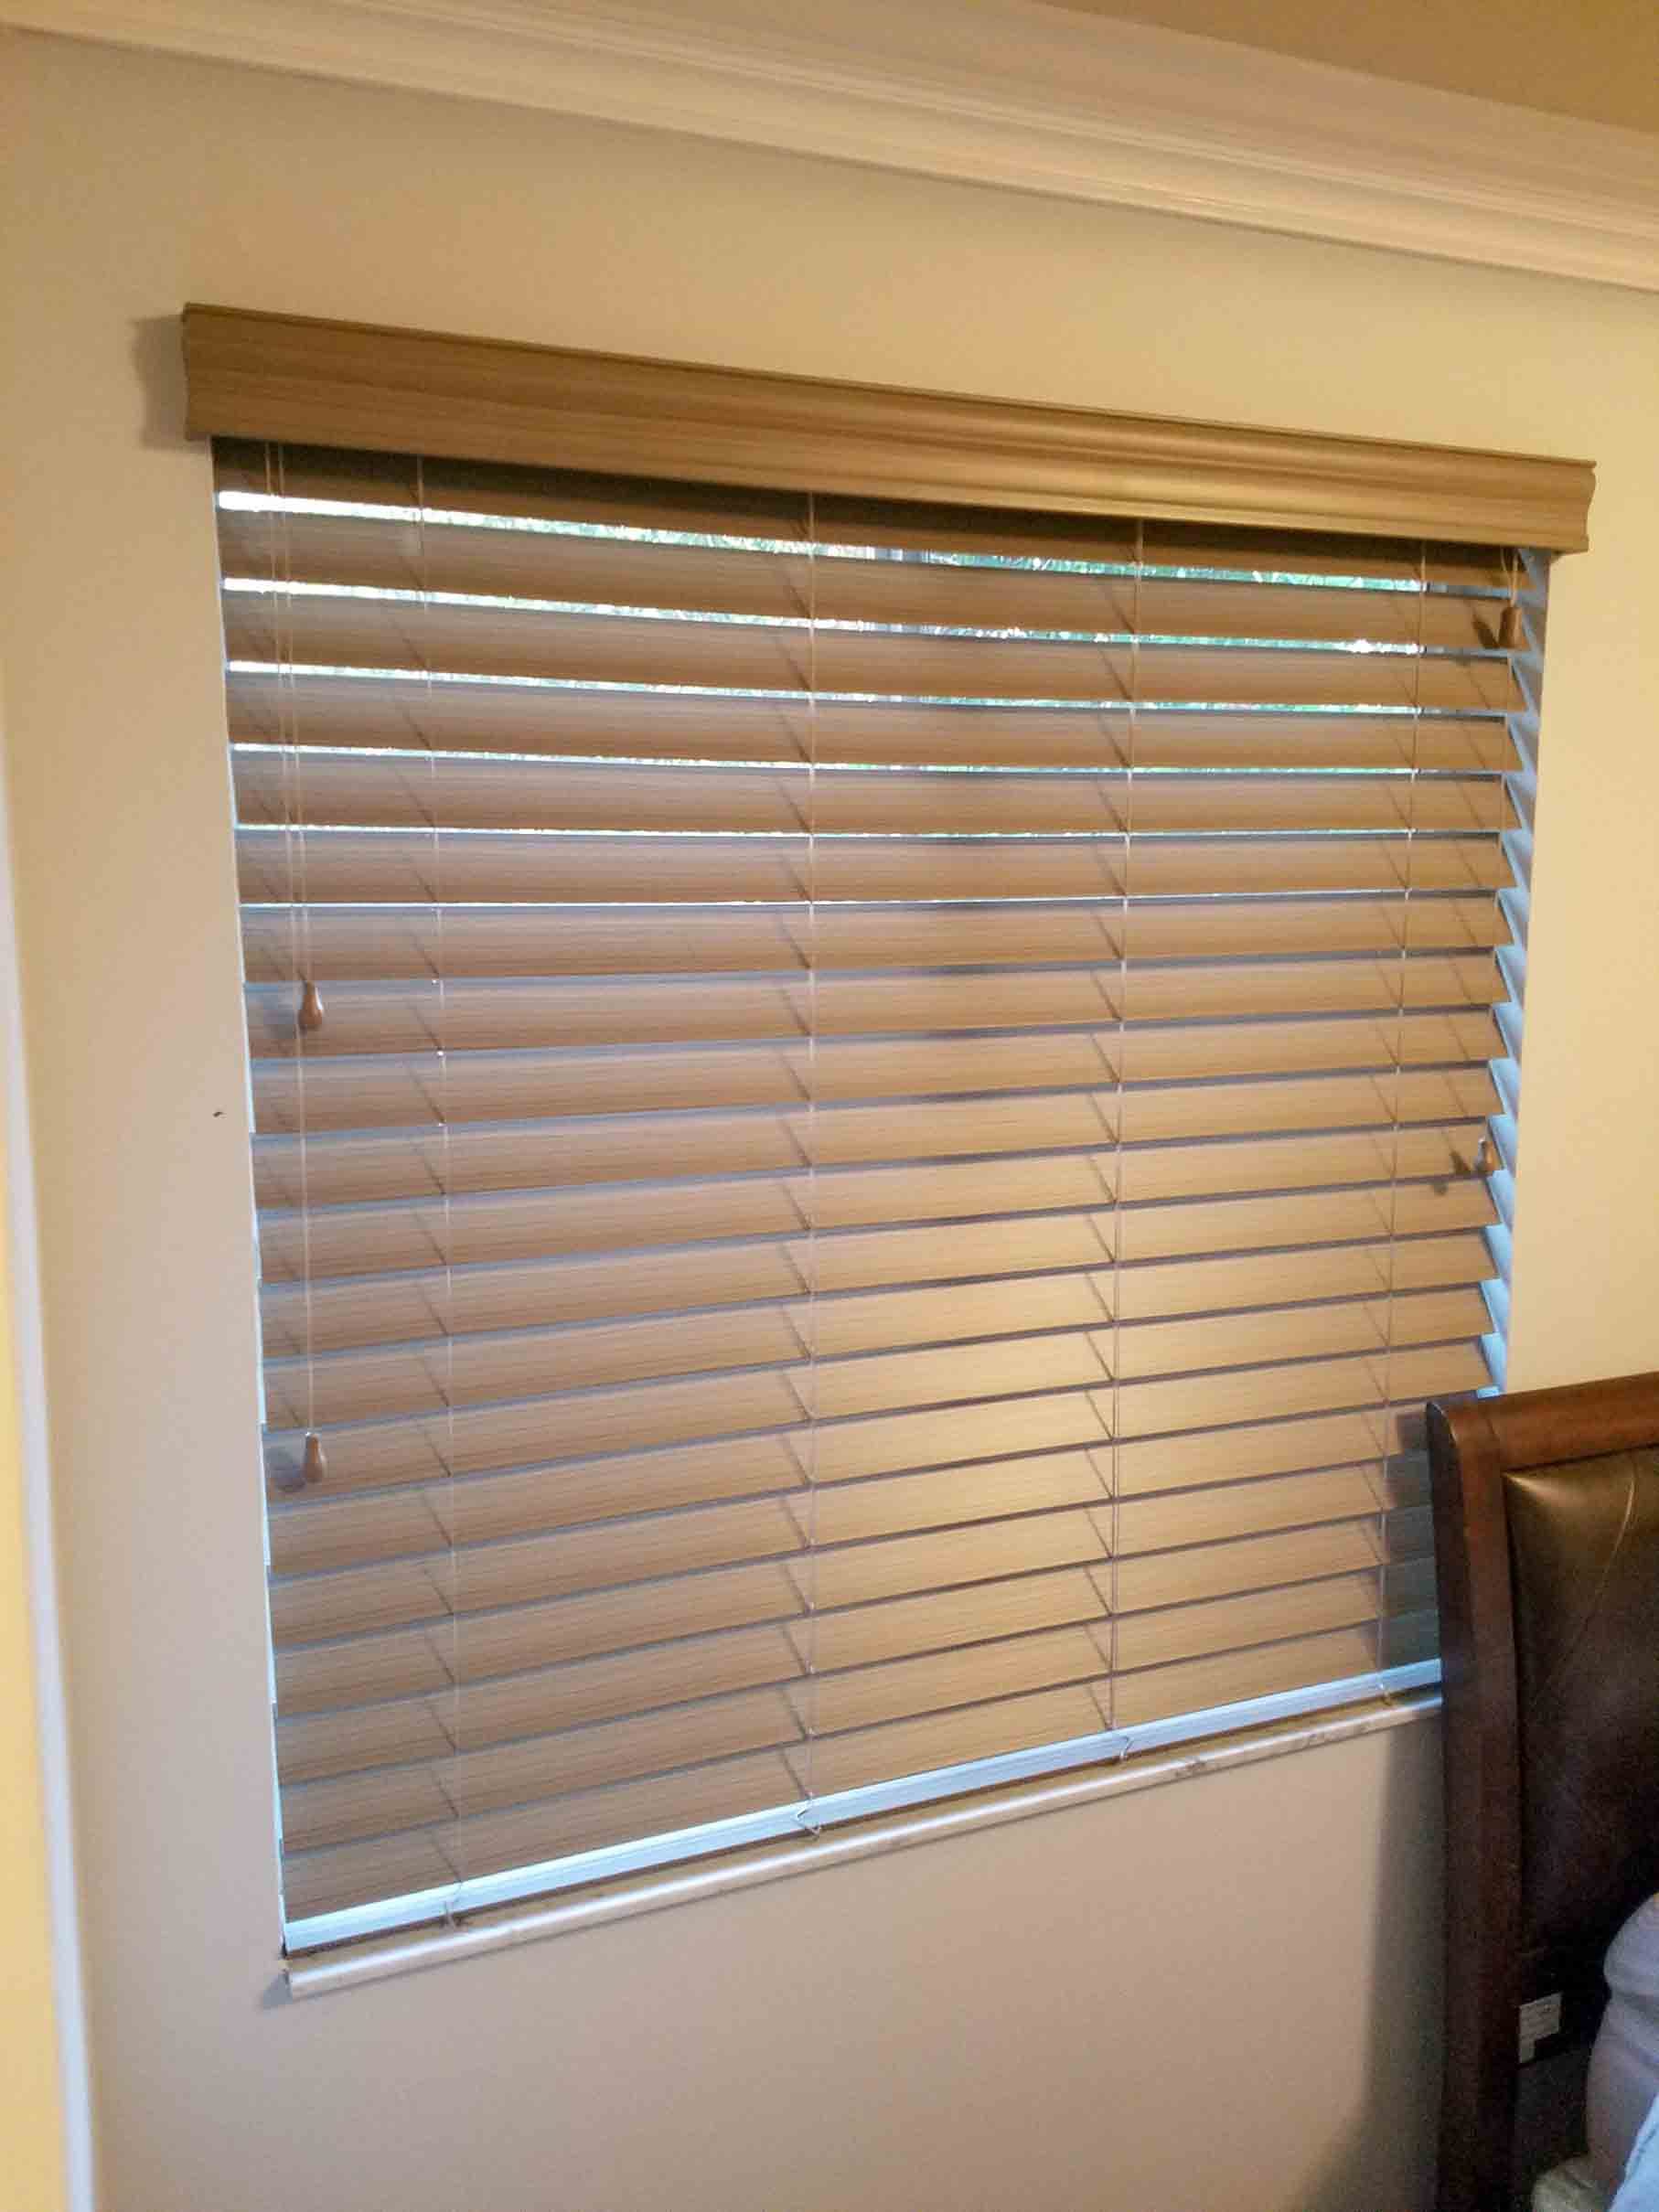 wood blinds gallery WOOD BLINDS GALLERY 20171011 184609